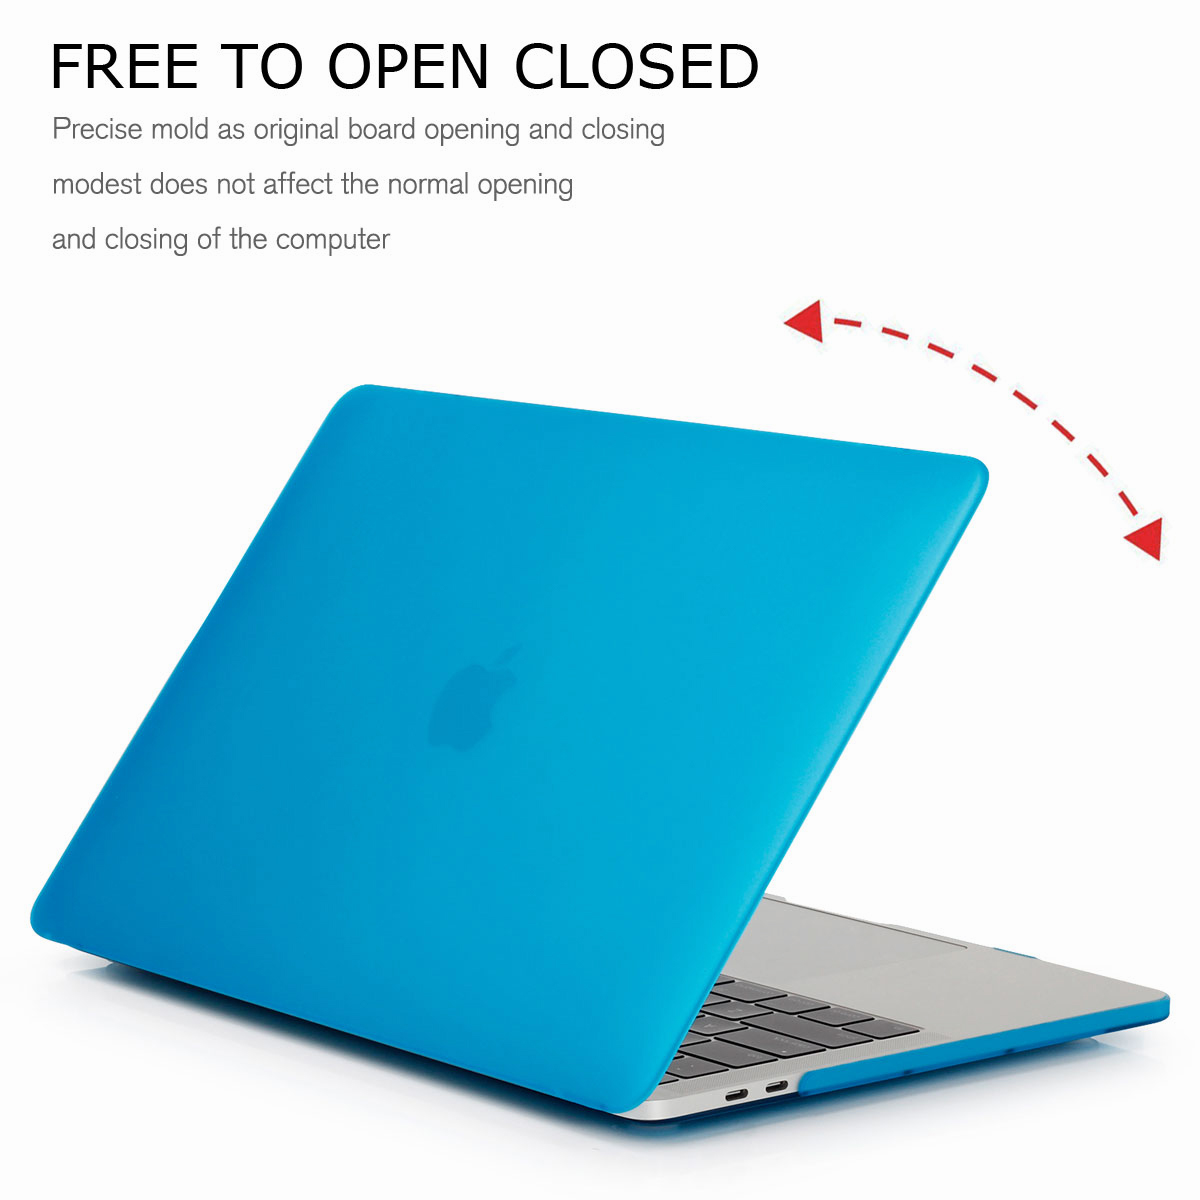 Shockproof-Rubberized-Matte-Hard-Case-Cover-For-Macbook-13-034-15-034-Inch-A1286-A1278 thumbnail 80